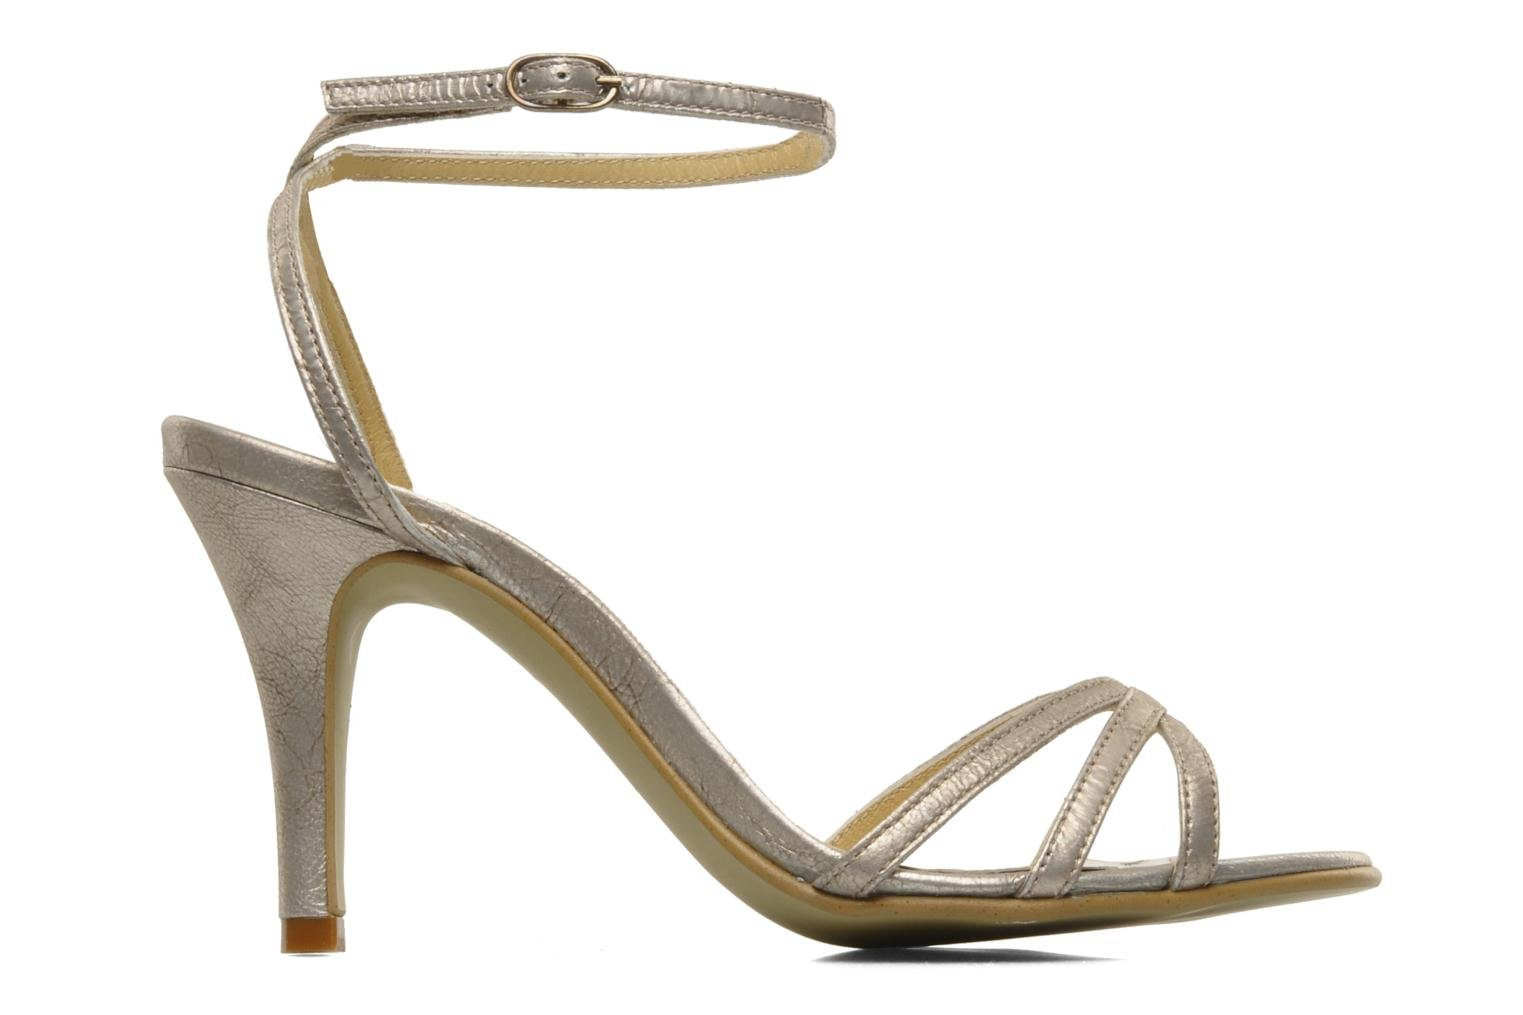 Tomina CUIR ANATOLID ARGENT